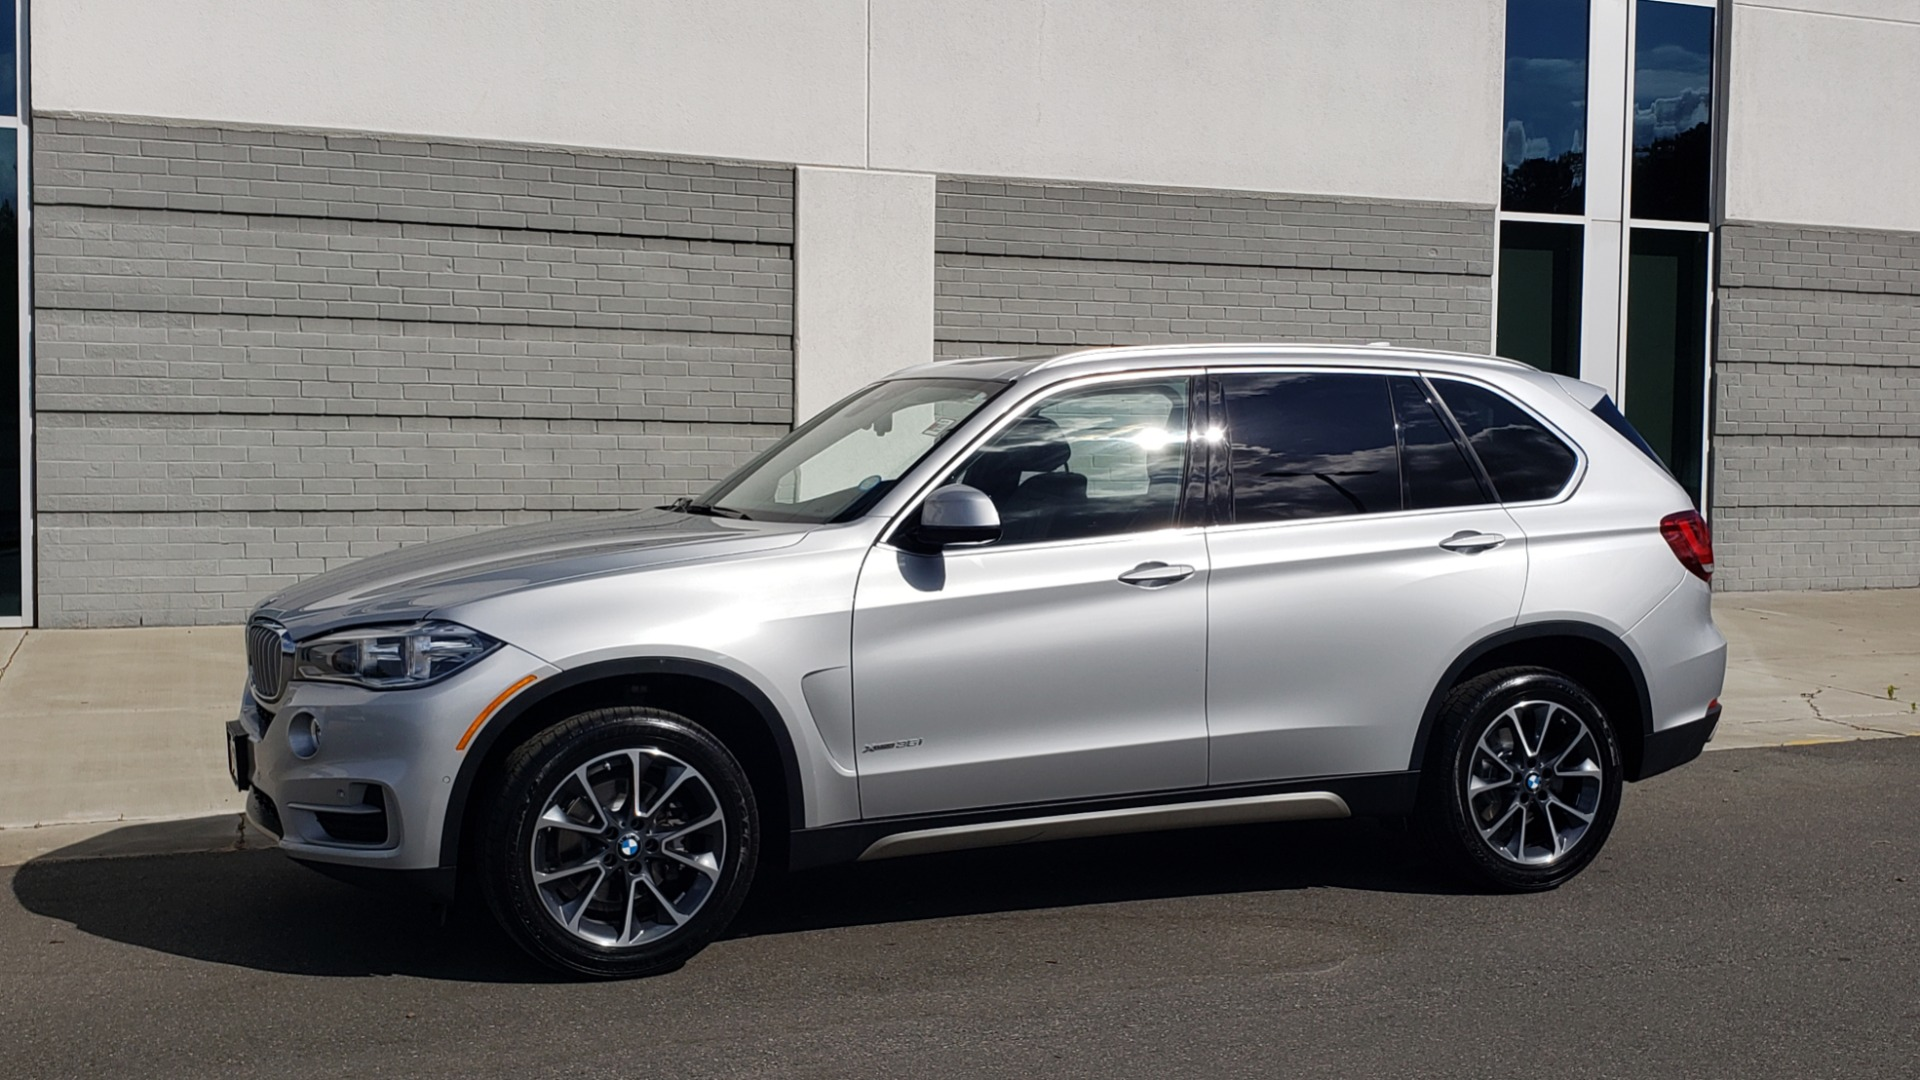 Used 2018 BMW X5 XDRIVE35I PREMIUM / NAV / PANO-ROOF / DRIVER ASST / REARVIEW for sale Sold at Formula Imports in Charlotte NC 28227 4